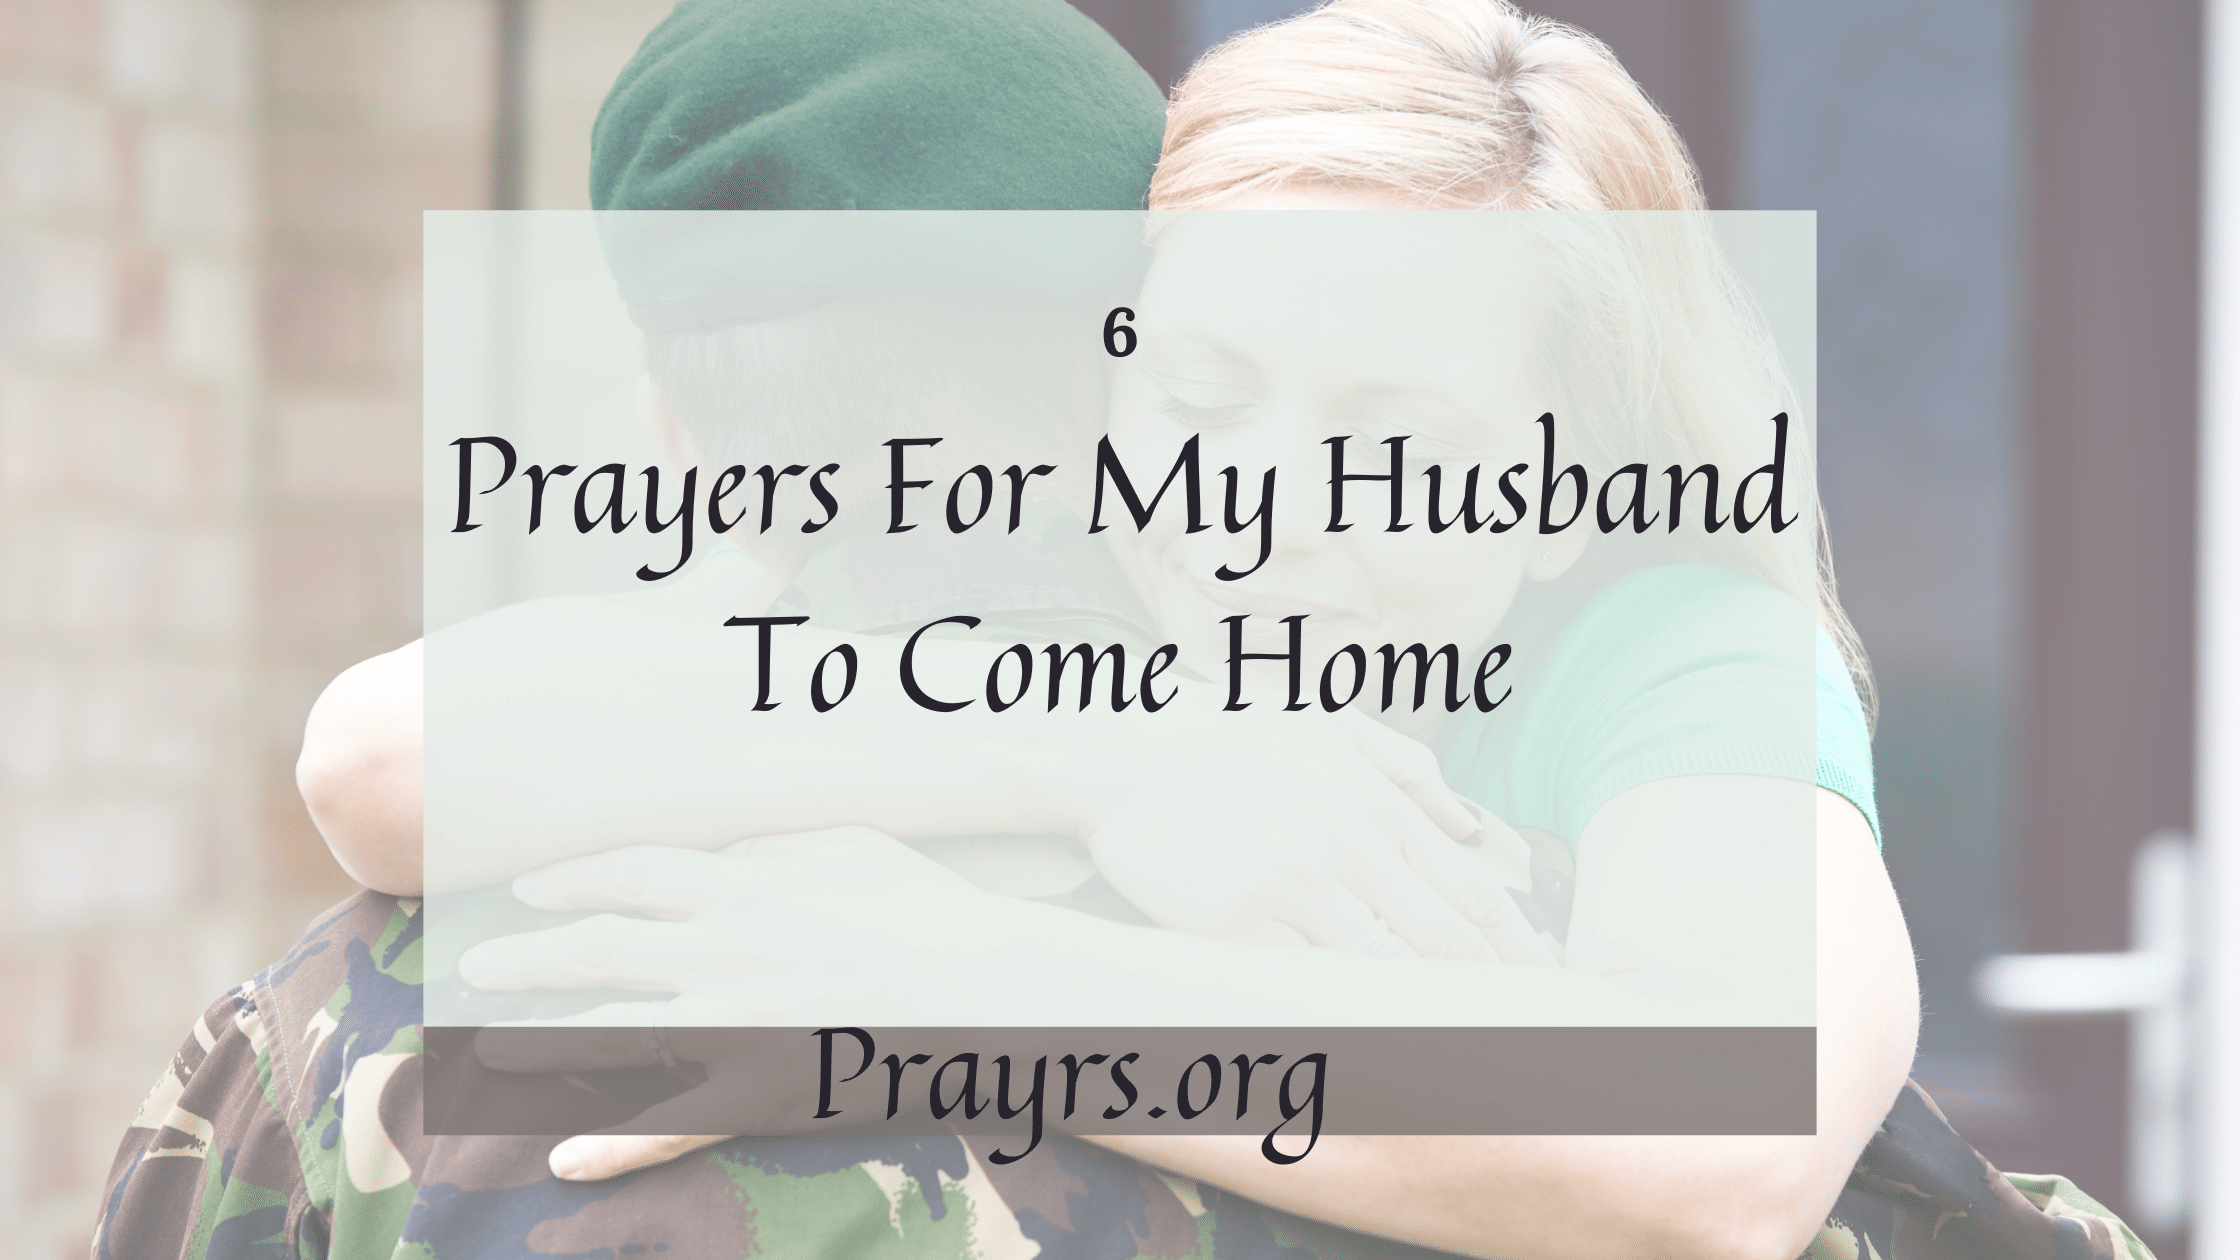 Prayers For My Husband To Come Home